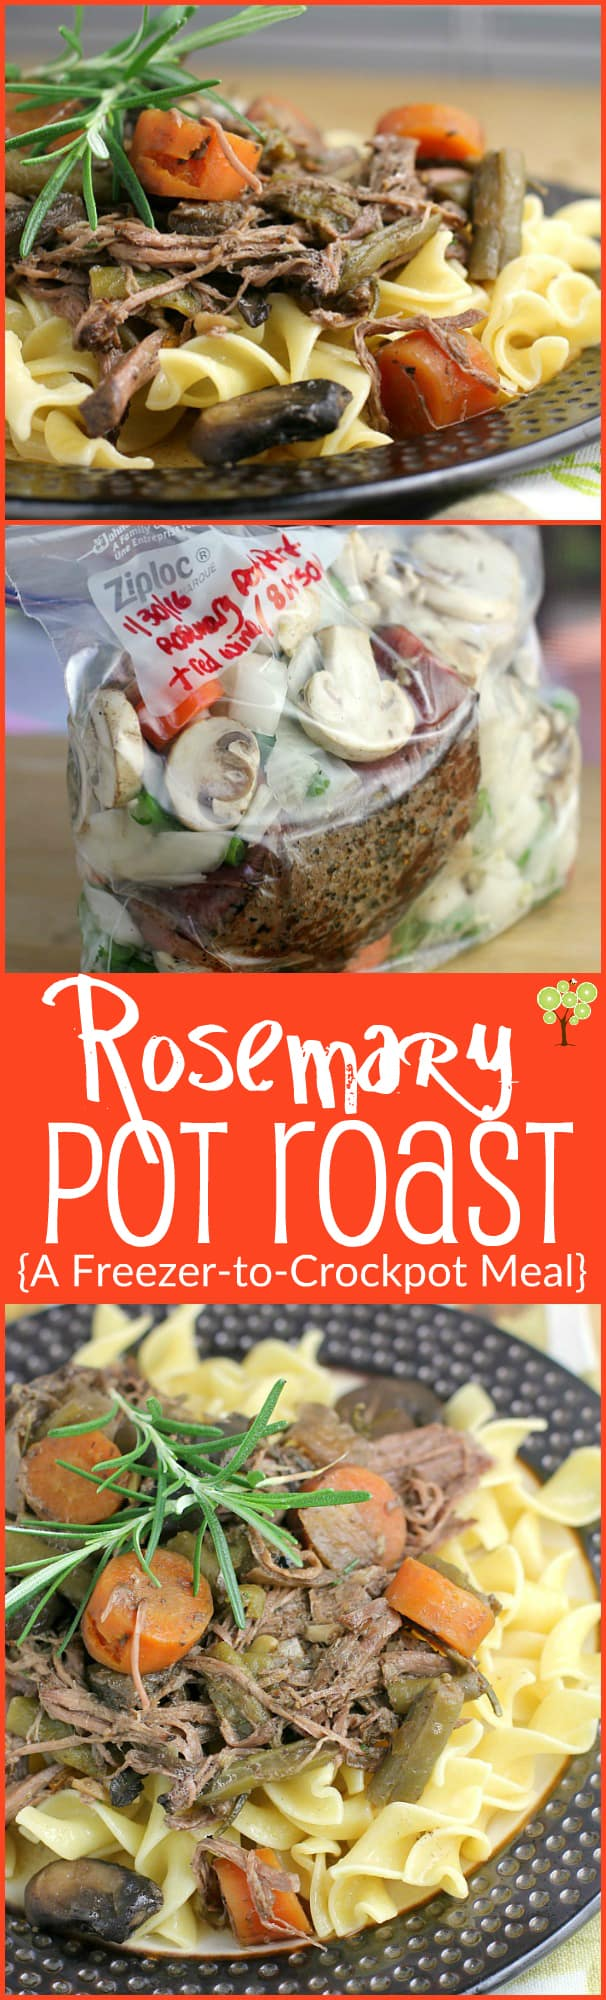 Rosemary Pot Roast {A ridiculously easy Freezer-to-Crockpot Meal}